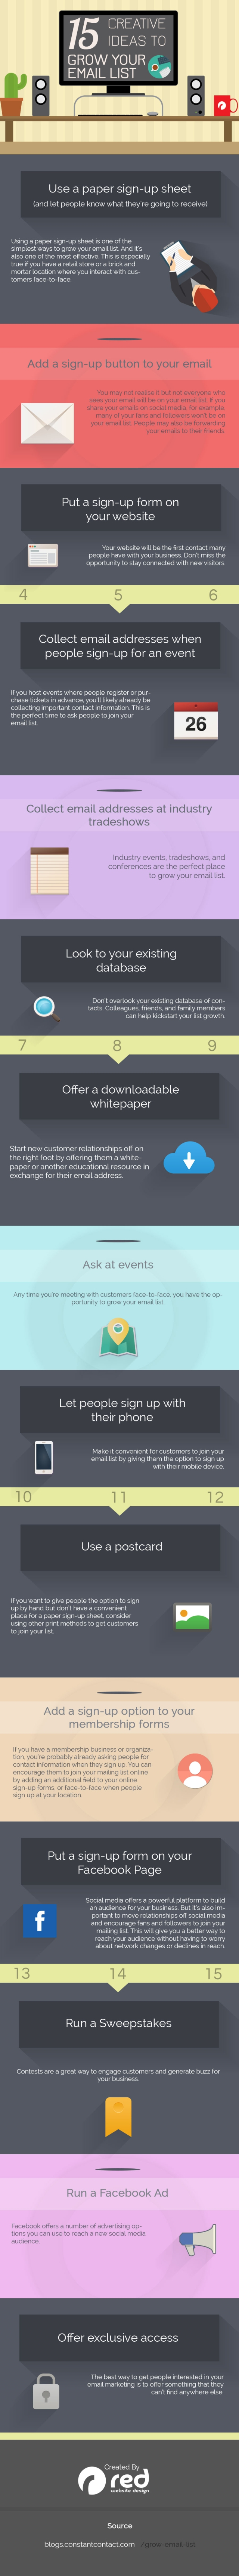 Email Marketing 15 Creative Ideas to MASSIVELY Increase Email Subscribers